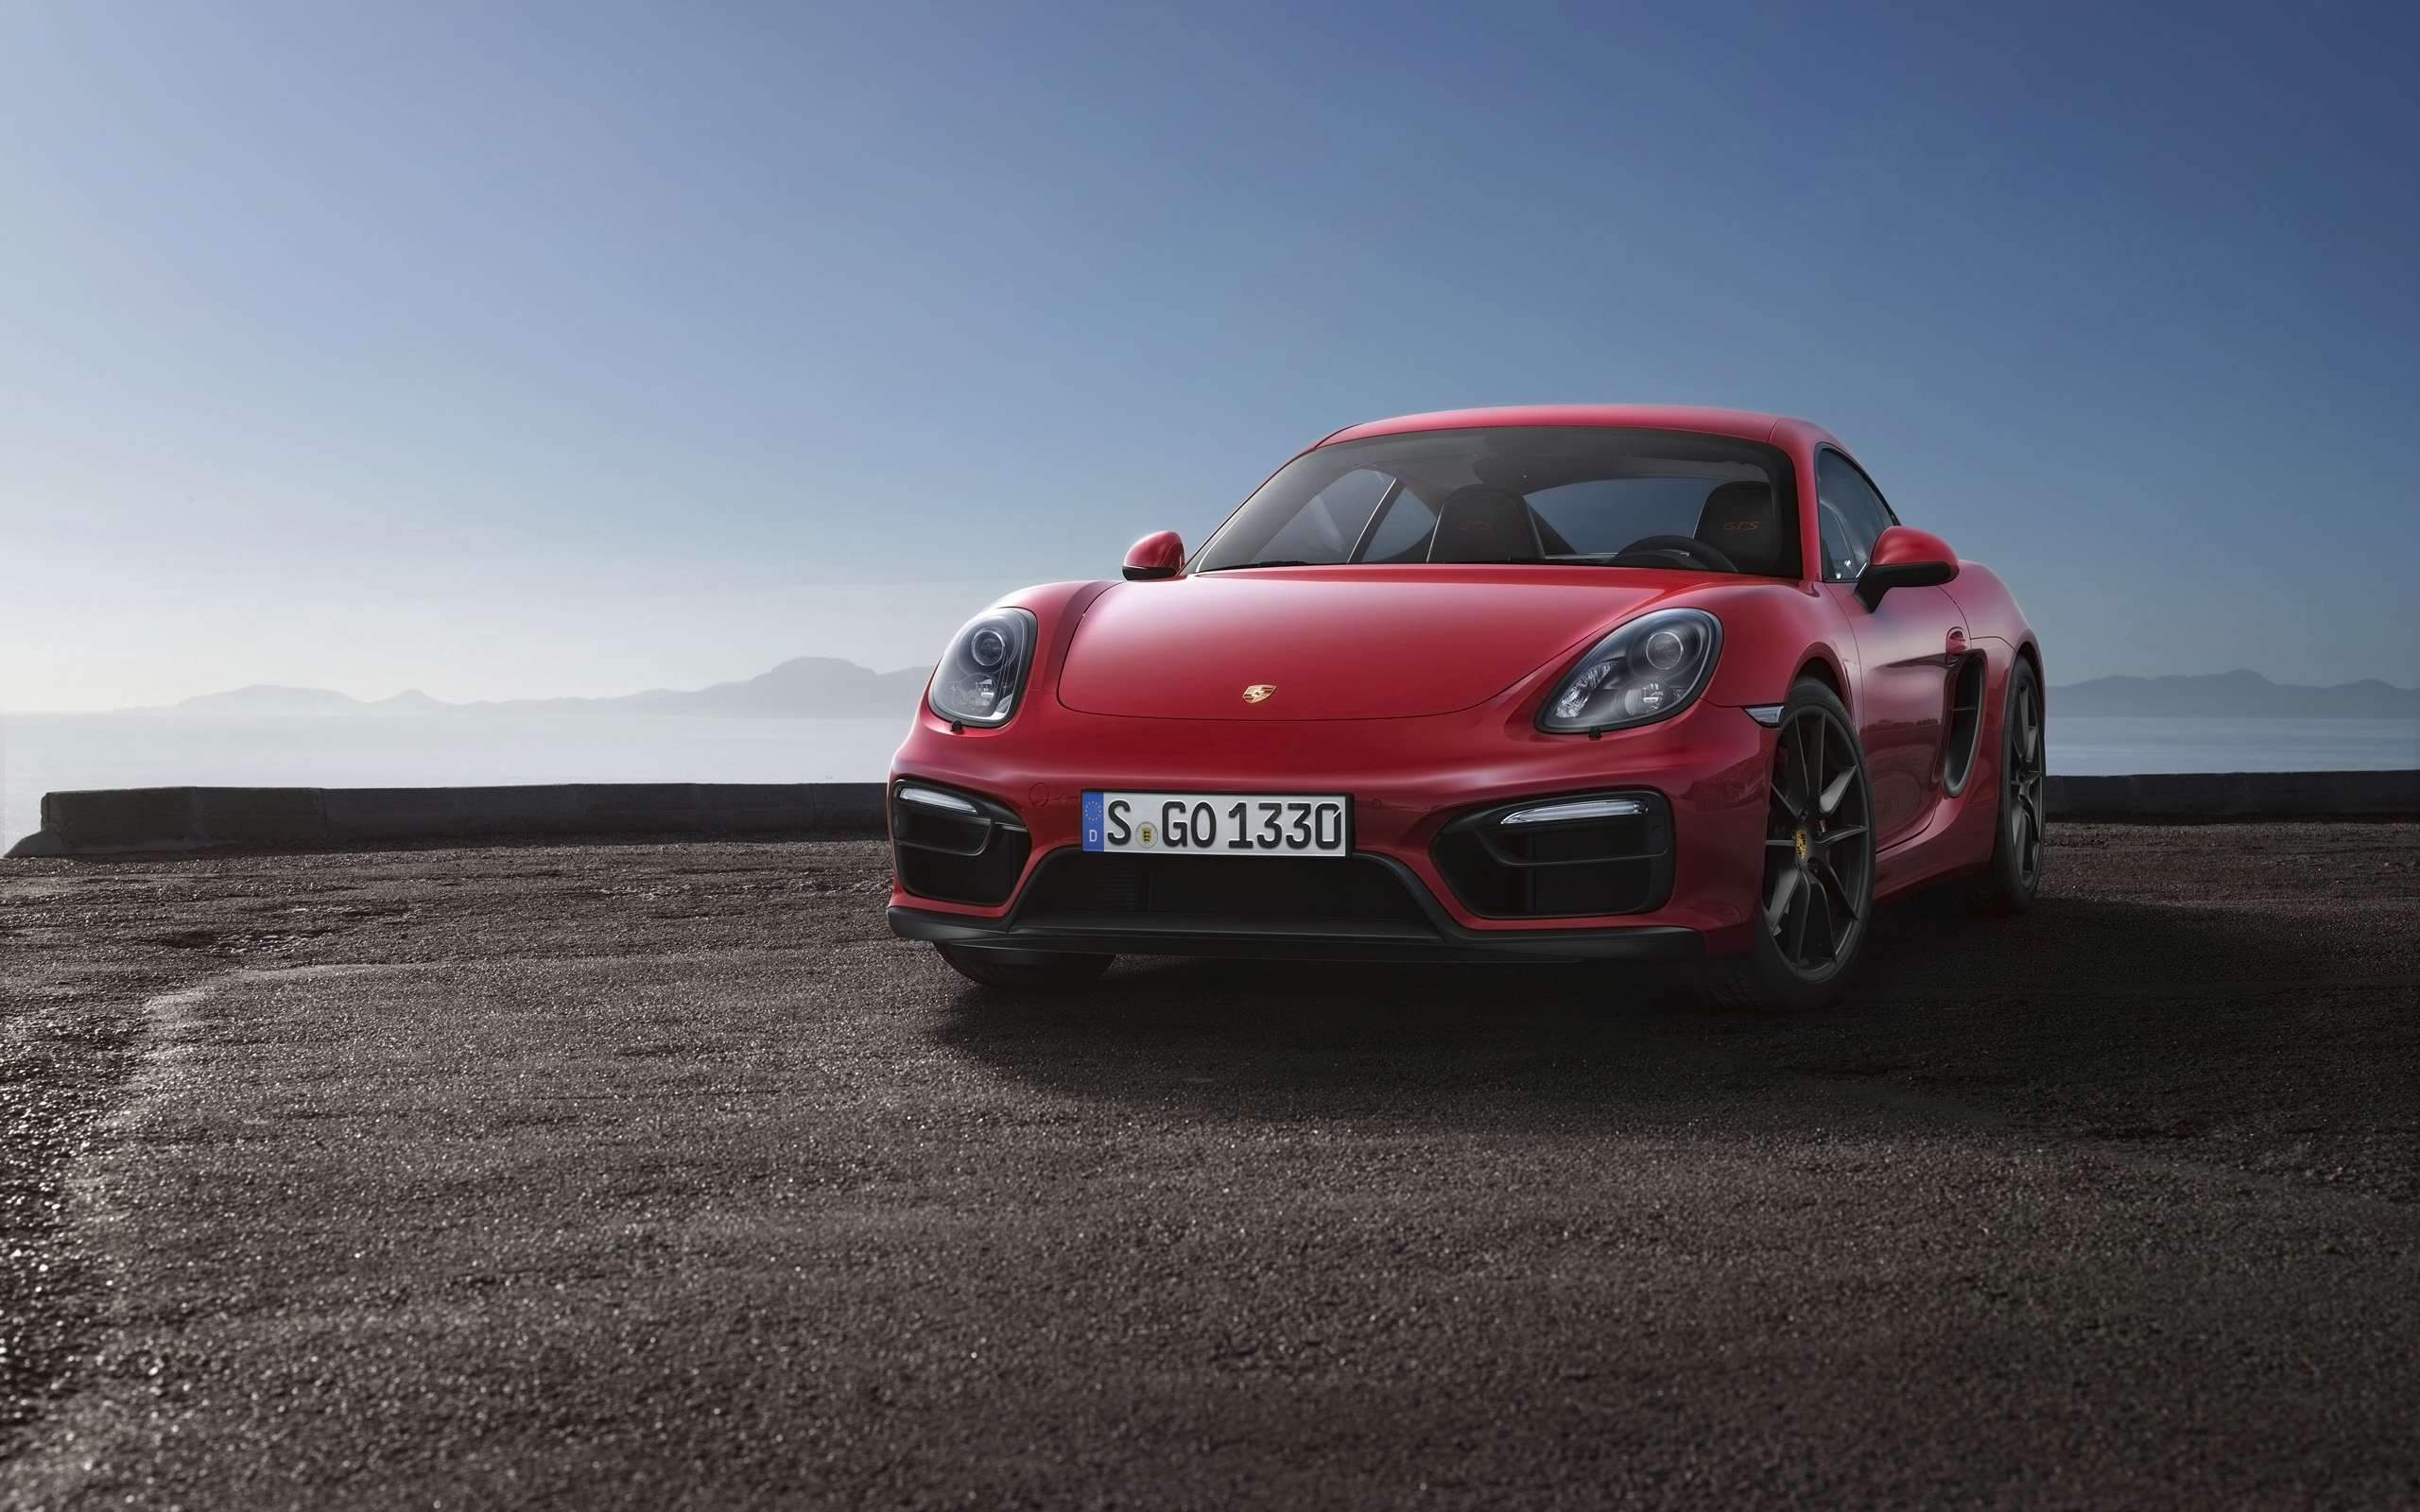 Porsche Cayman and Cayman S 981 (2014-2016)